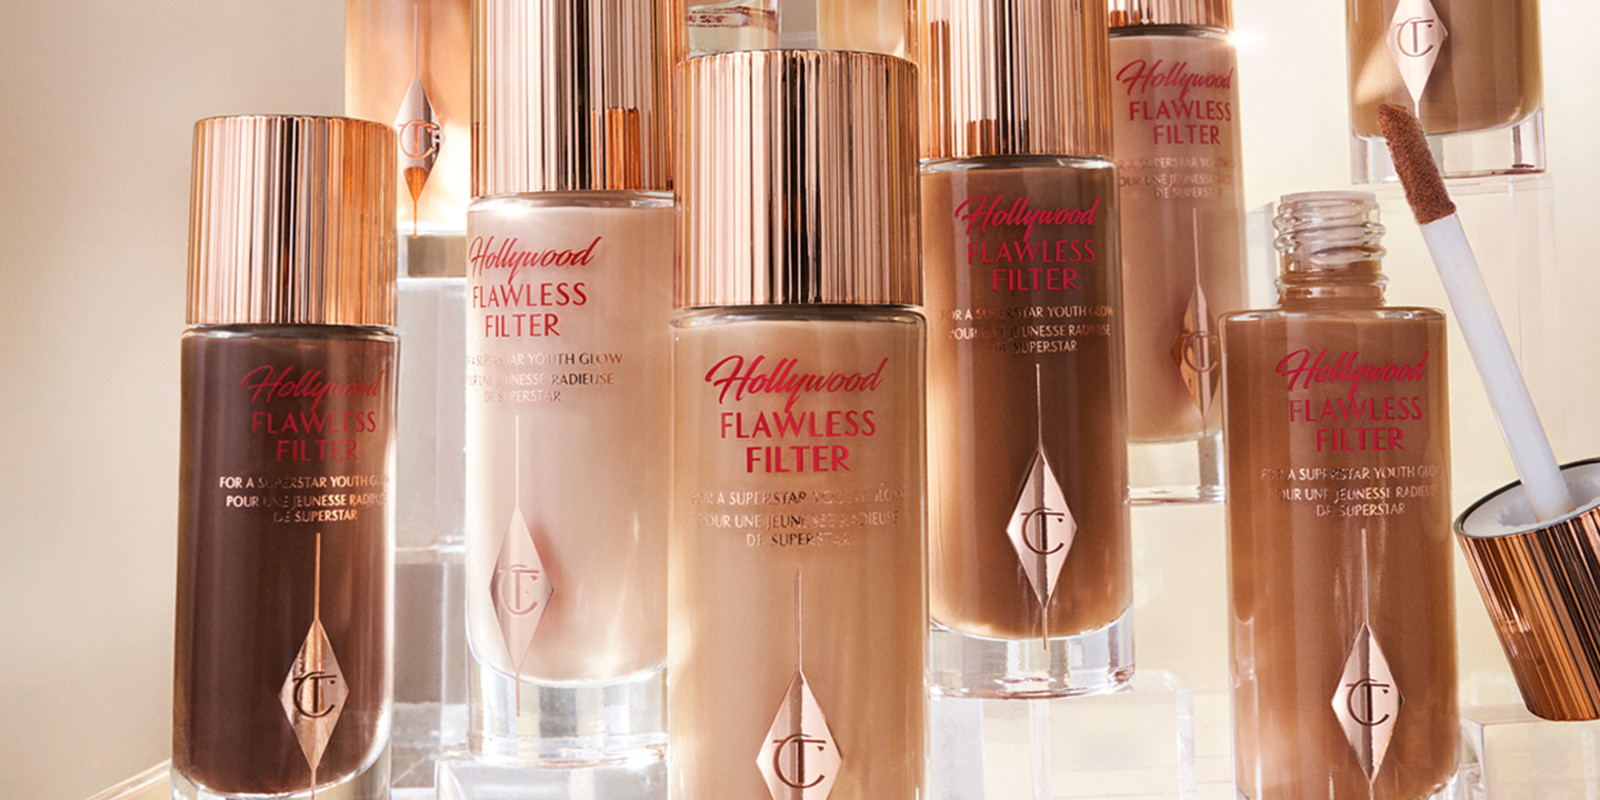 Hollywood Flawless Filter Still Life Product Images